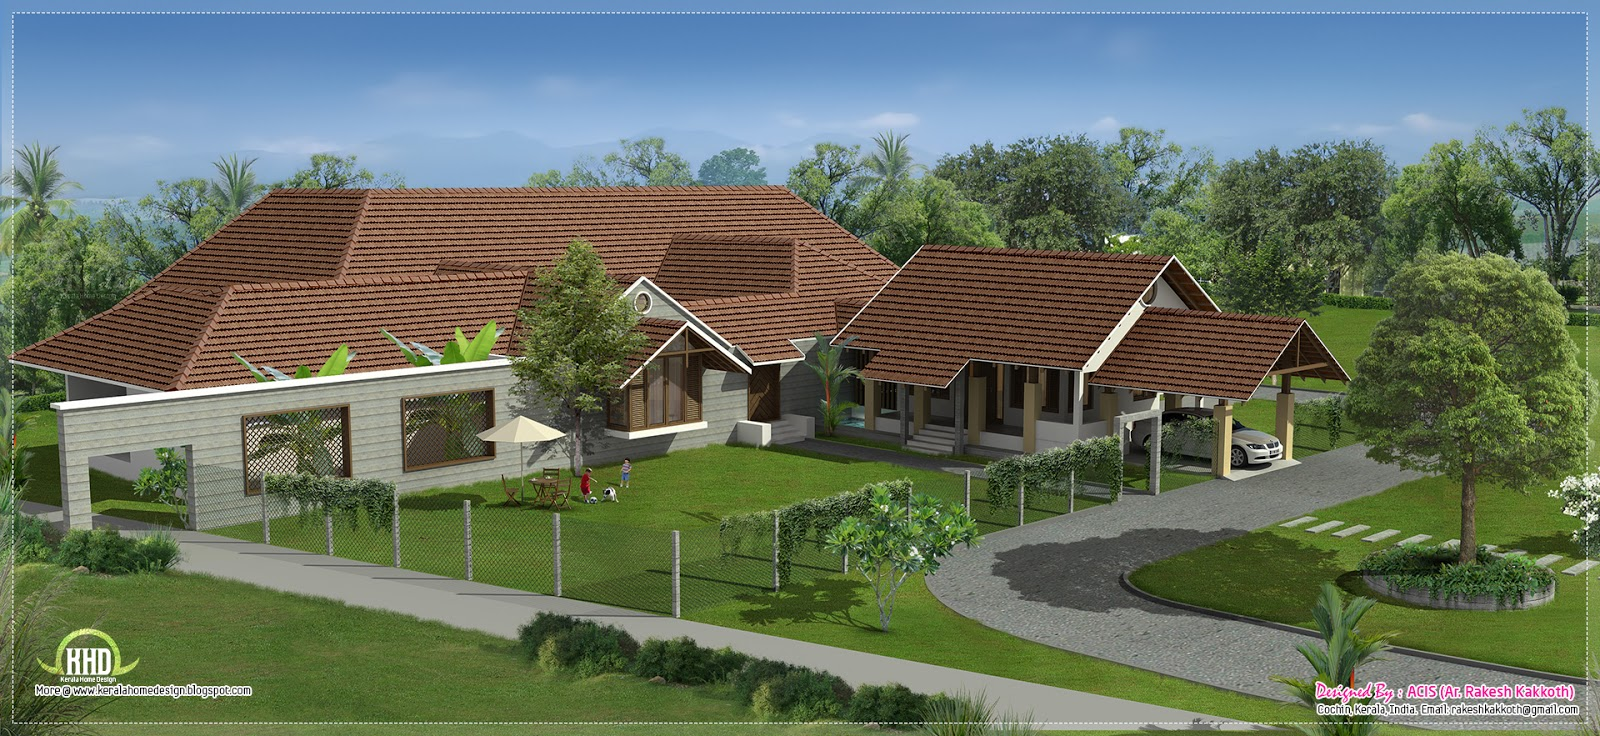 Eco friendly houses luxury bungalow exterior design for Bungalow plans